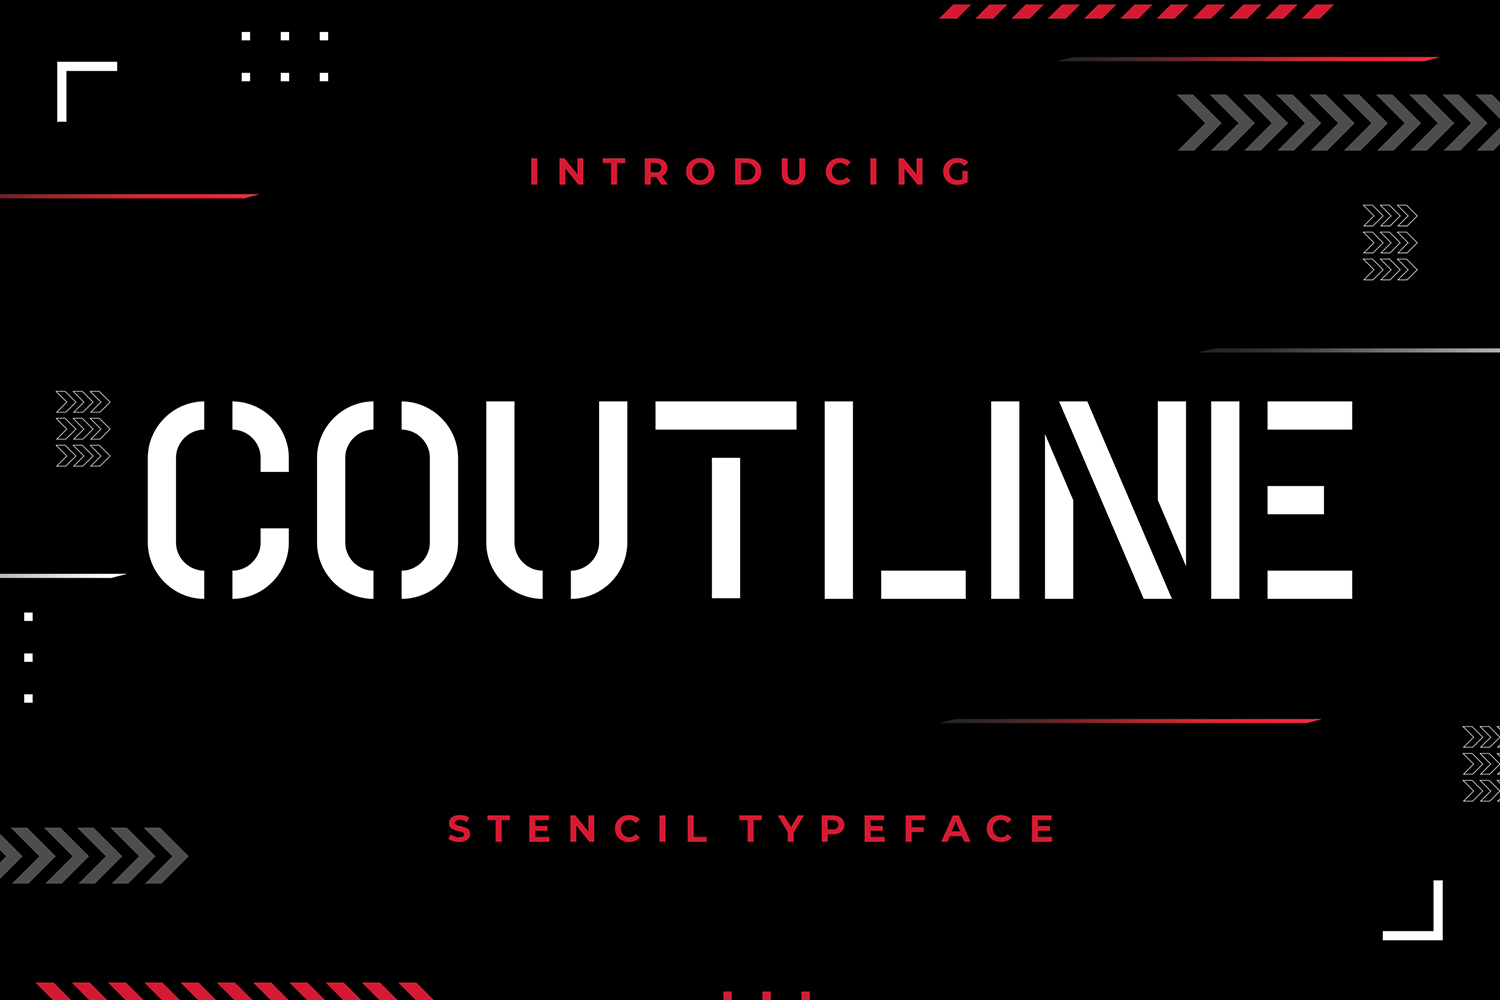 Coutline Free Font